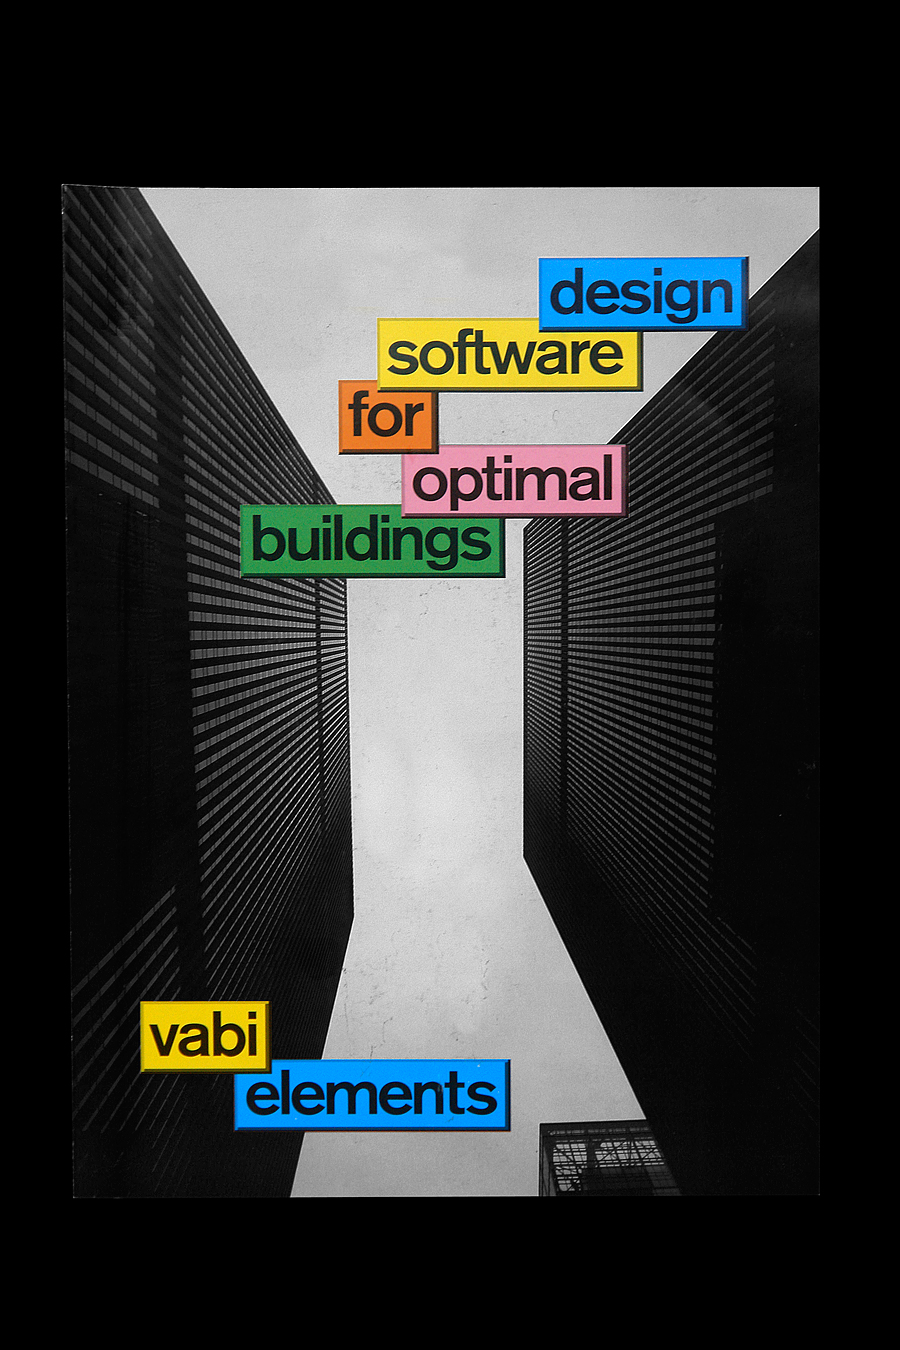 Vabi brochure cover